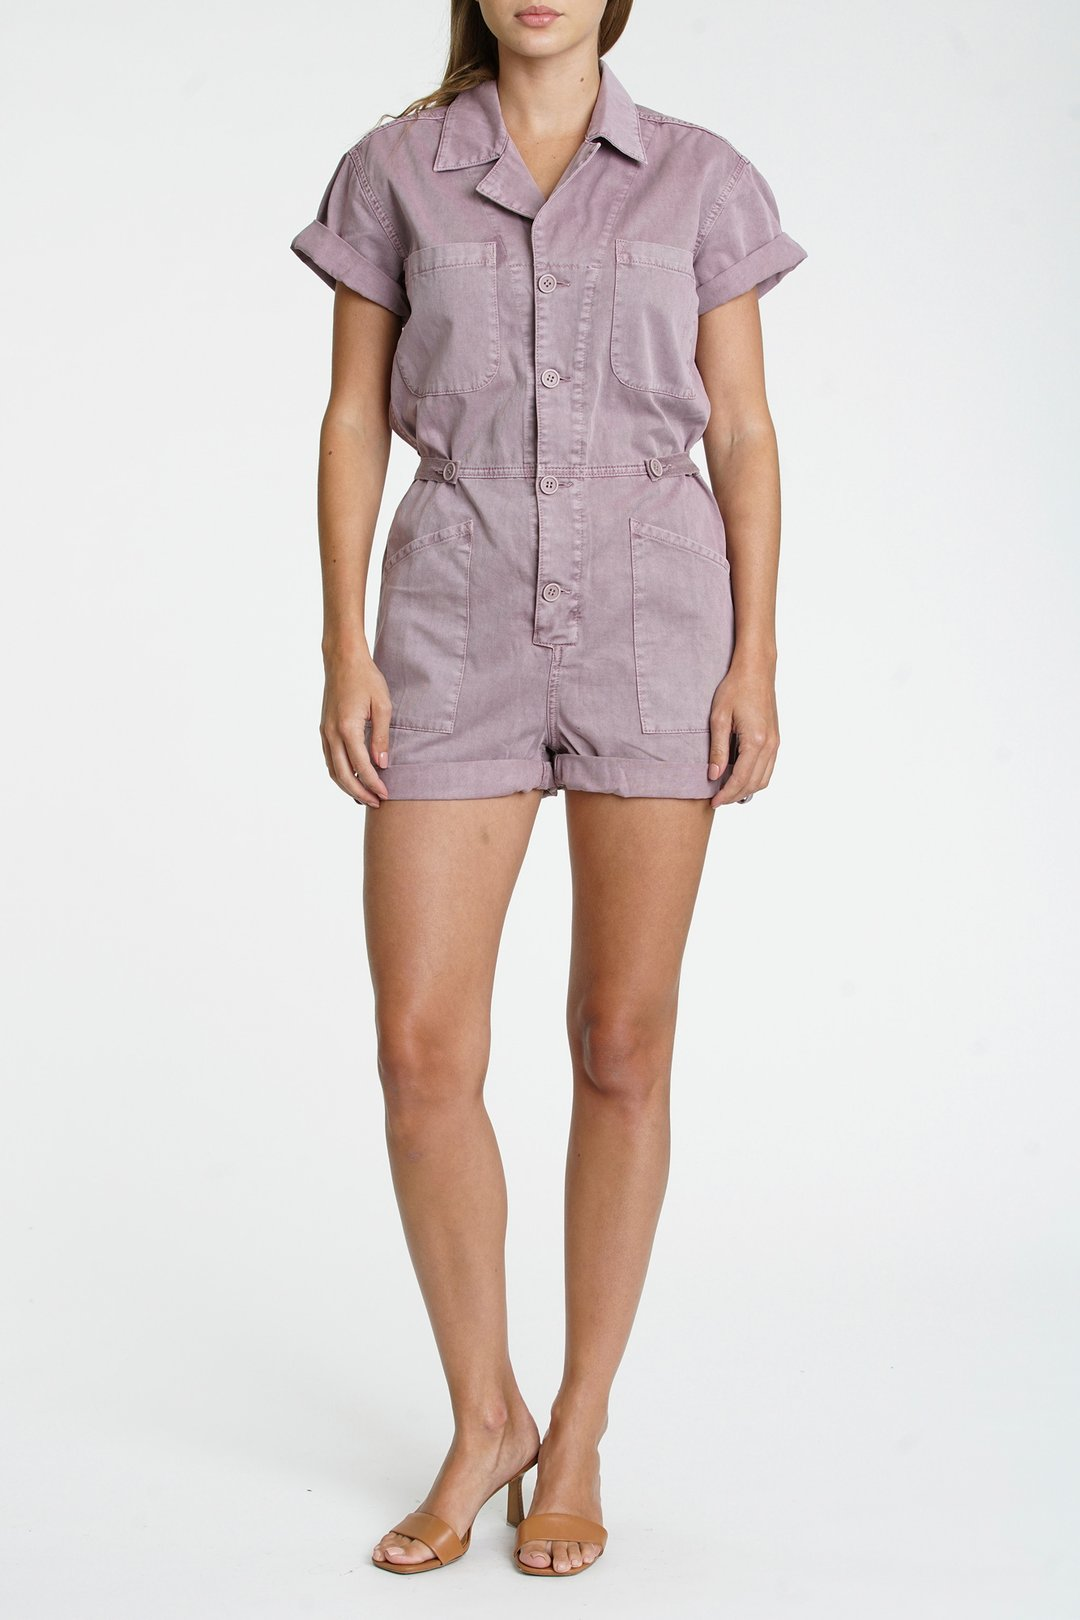 Pistola - Field Suit Short - Liliac Dust